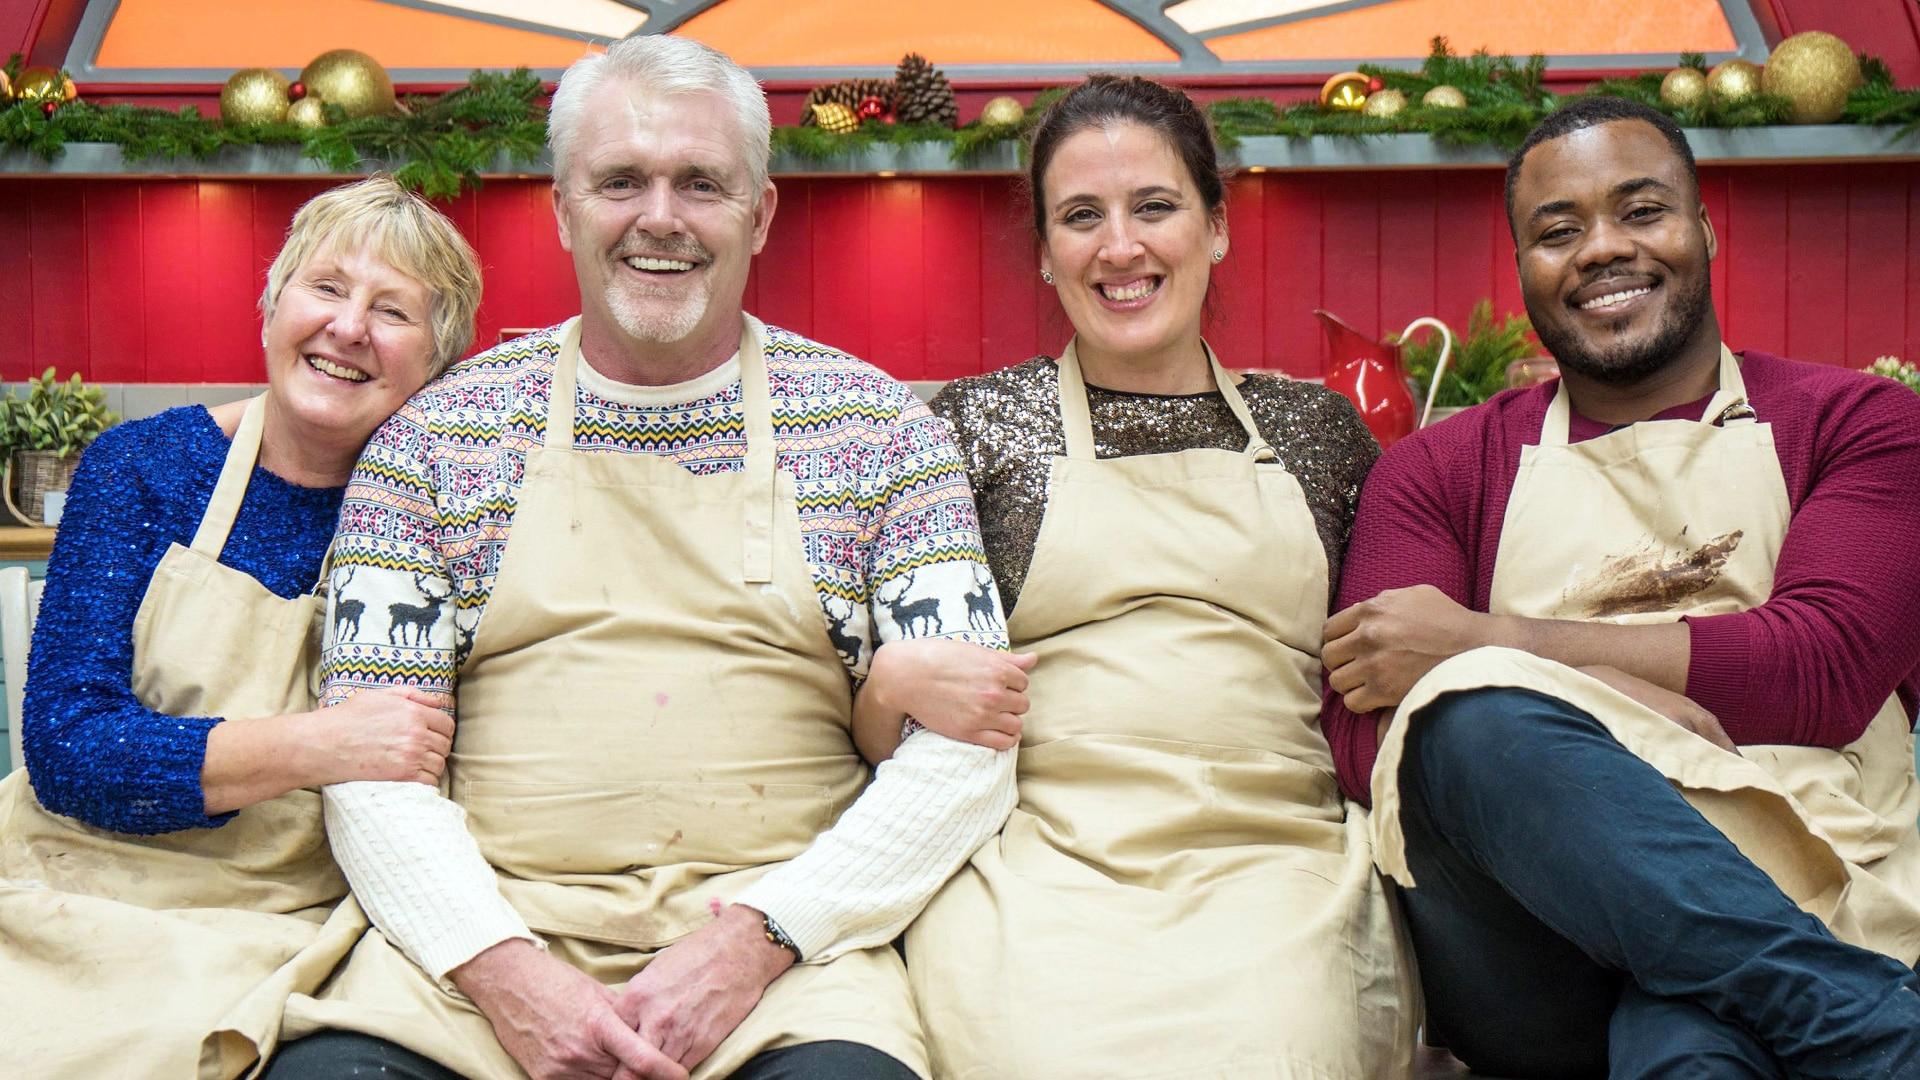 The Great Christmas Bake Off 2020 Watch Online The Great British Bake Off: Festive Specials   All 4